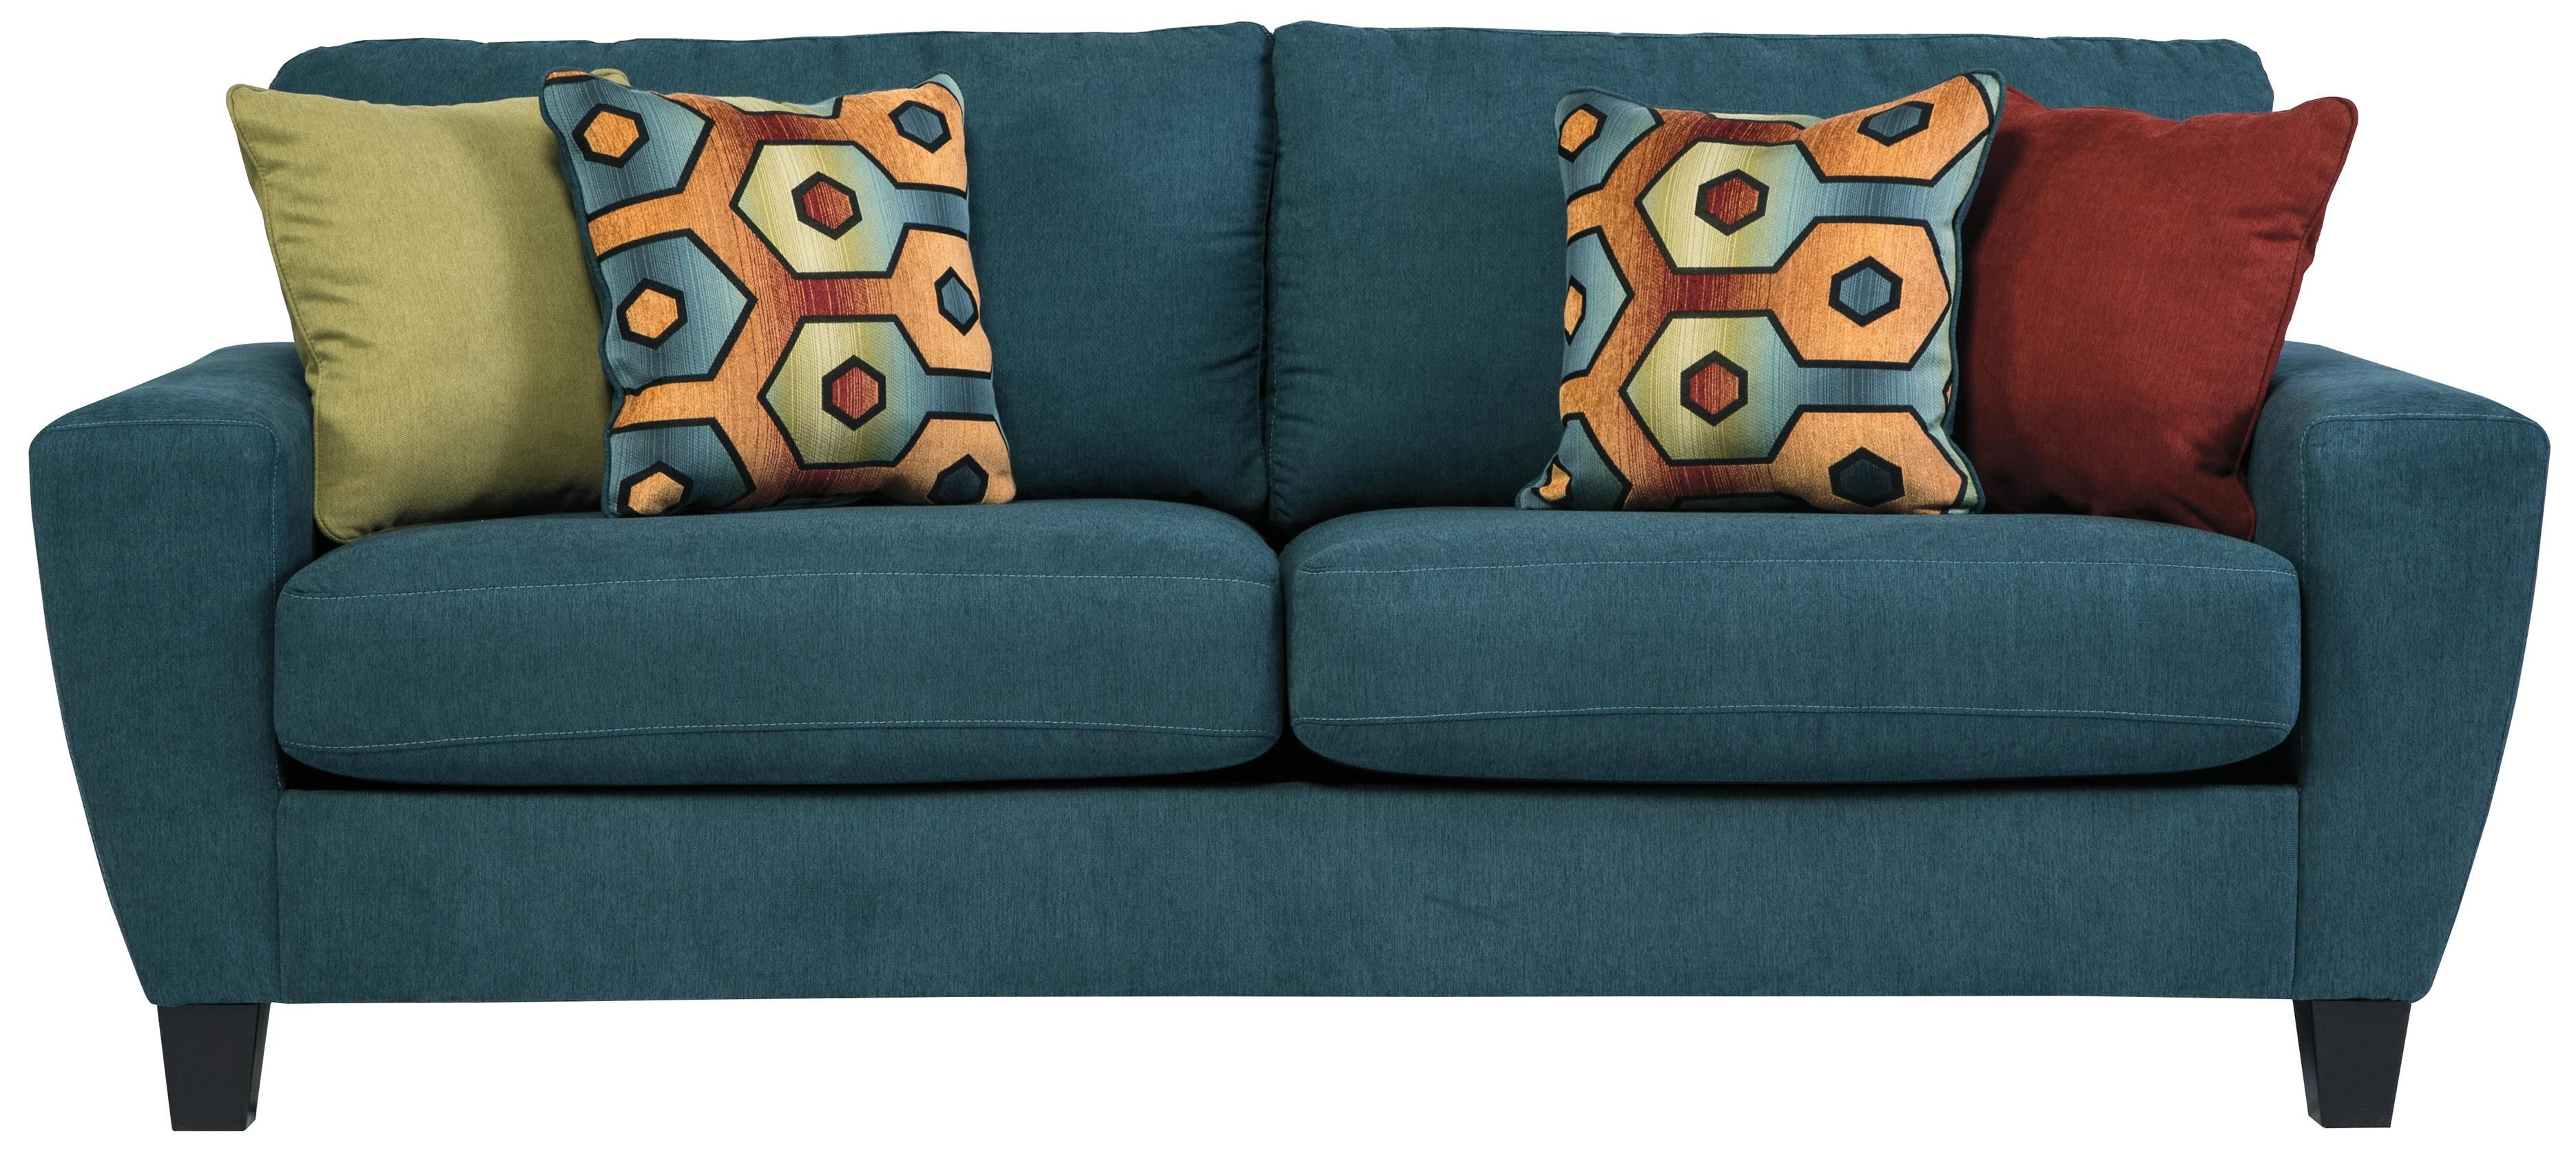 Surprising Fun Funky And Vibrant Sofa Perfect For The College Student Machost Co Dining Chair Design Ideas Machostcouk